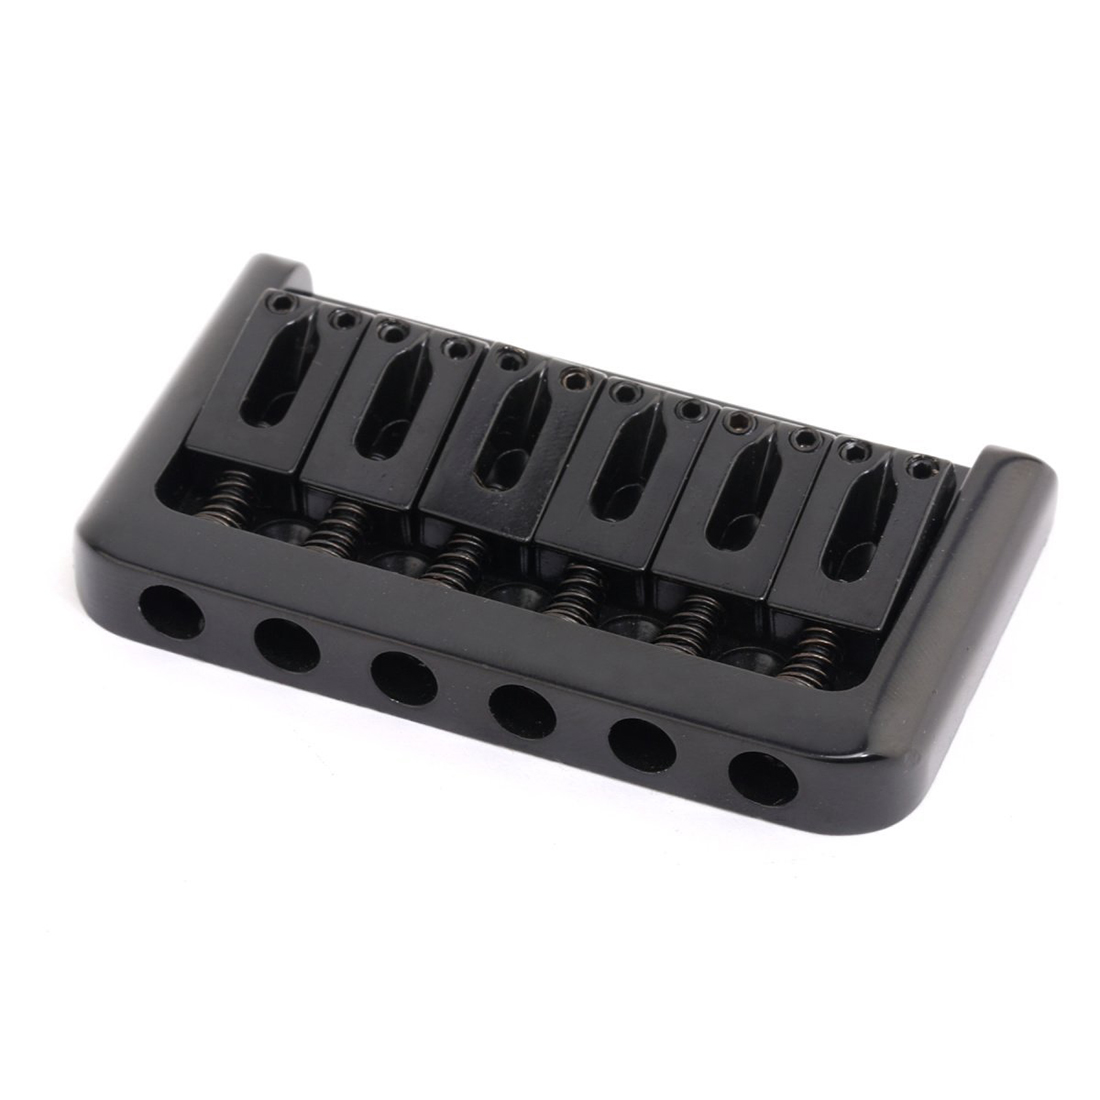 6 String Non-tremolo Hardtail Electric Guitar Bridge Saddle for Strat Stratocaster Tele Telecaster Guitar Replacement , Black kaish 6x guitar string through body ferrule 1 4 string ferrules for telecaster various colors